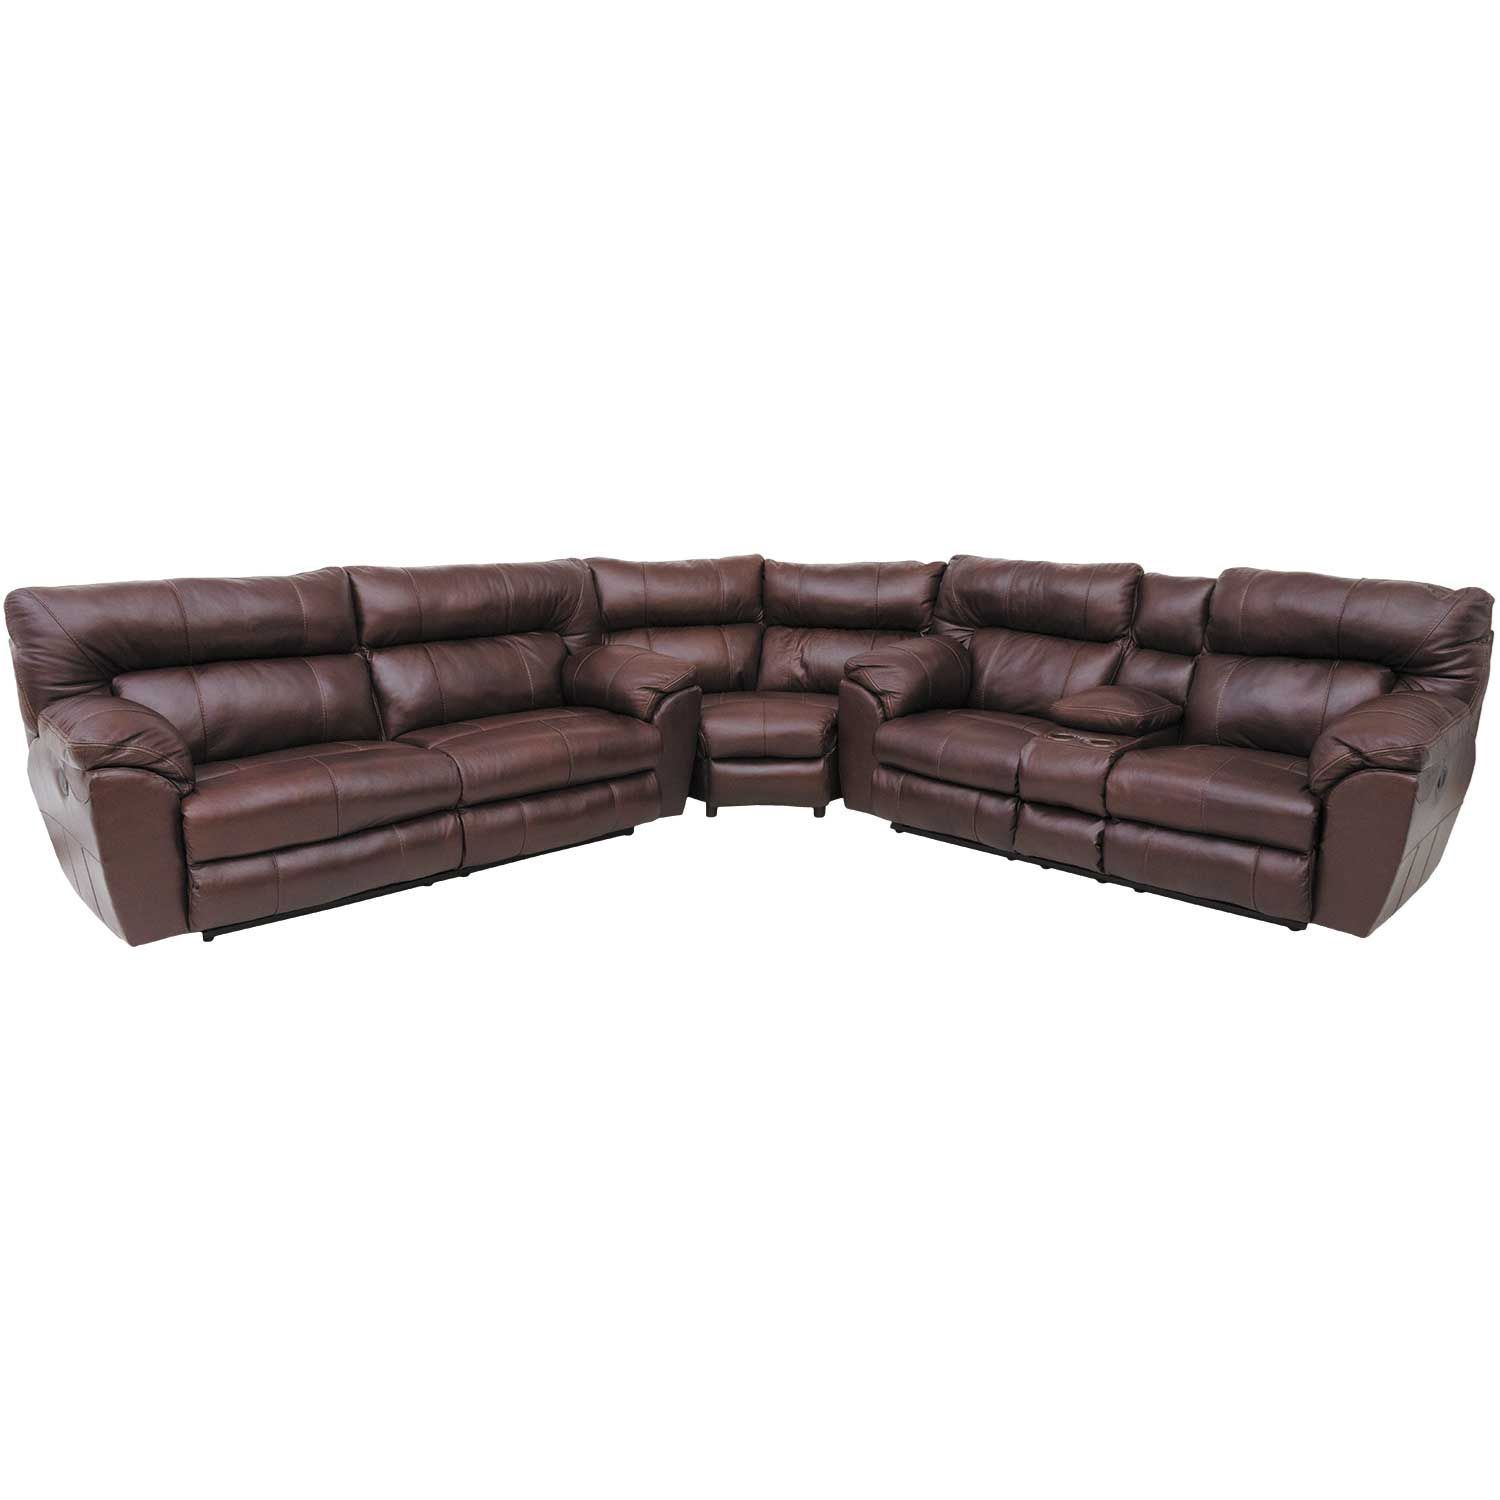 Italian Leather 3 Piece Sectional